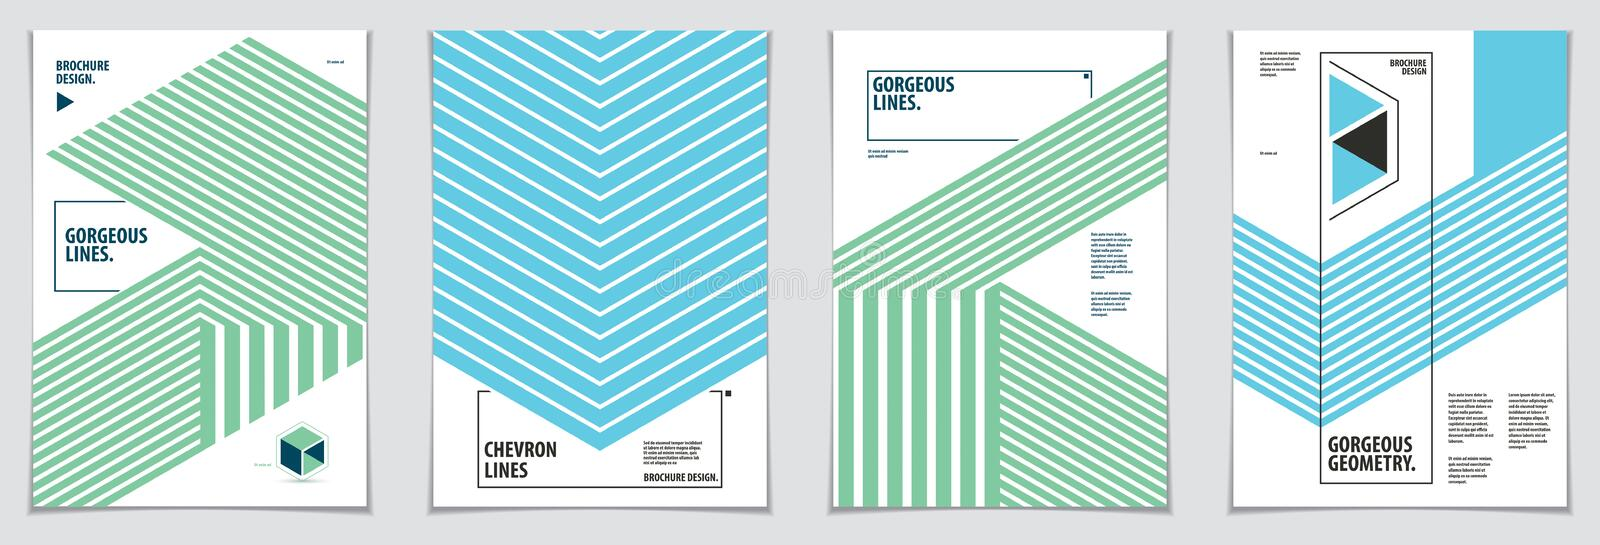 Minimalistic cover brochure designs. Vector geometric patterns abstract backgrounds set. Layouts for Covers, Placards, Posters, royalty free illustration